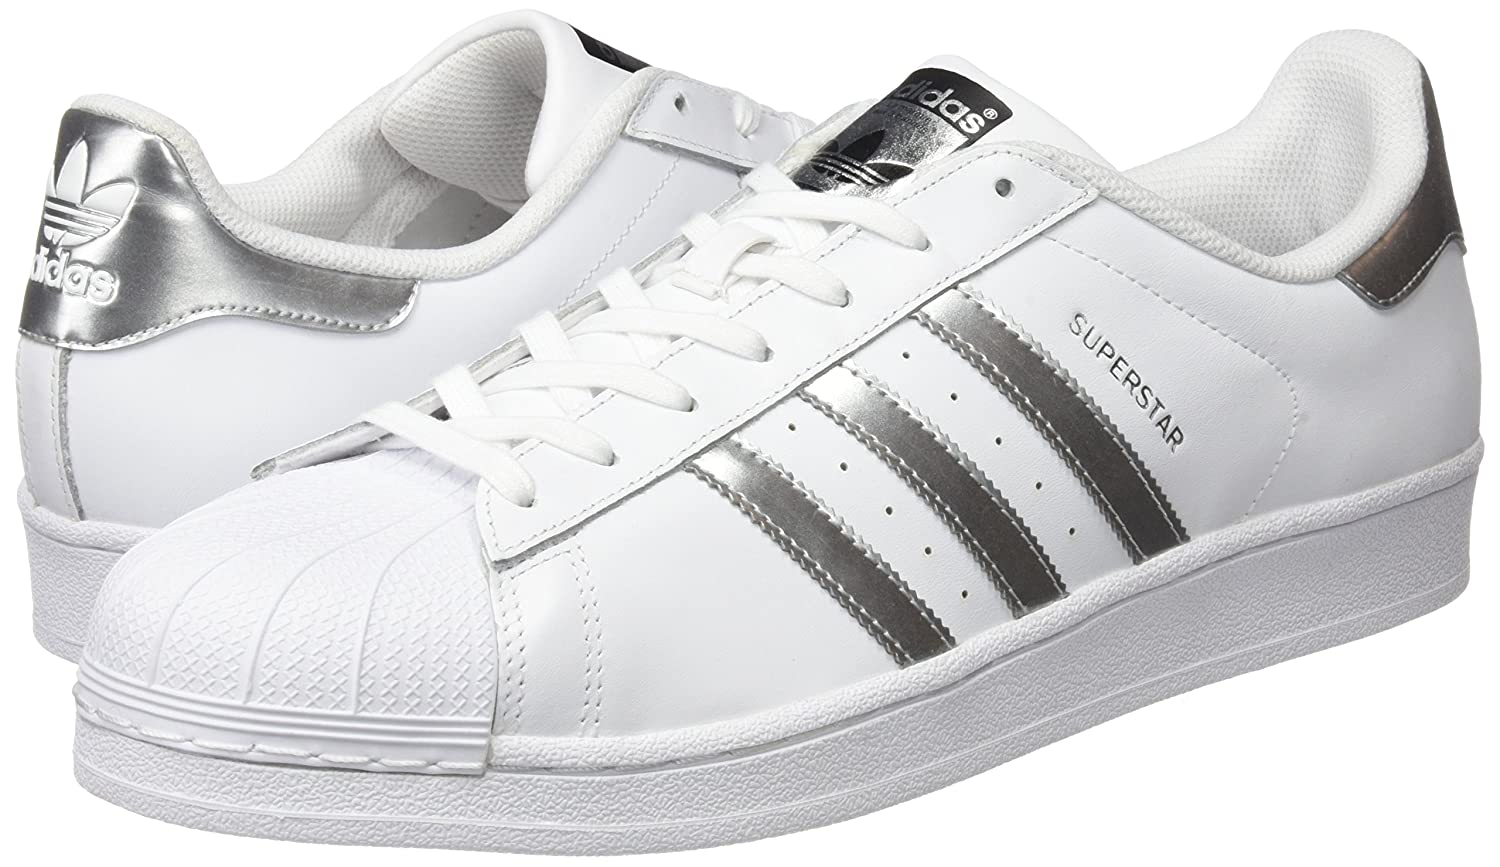 Adidas Superstar Up Strap Frontera popular